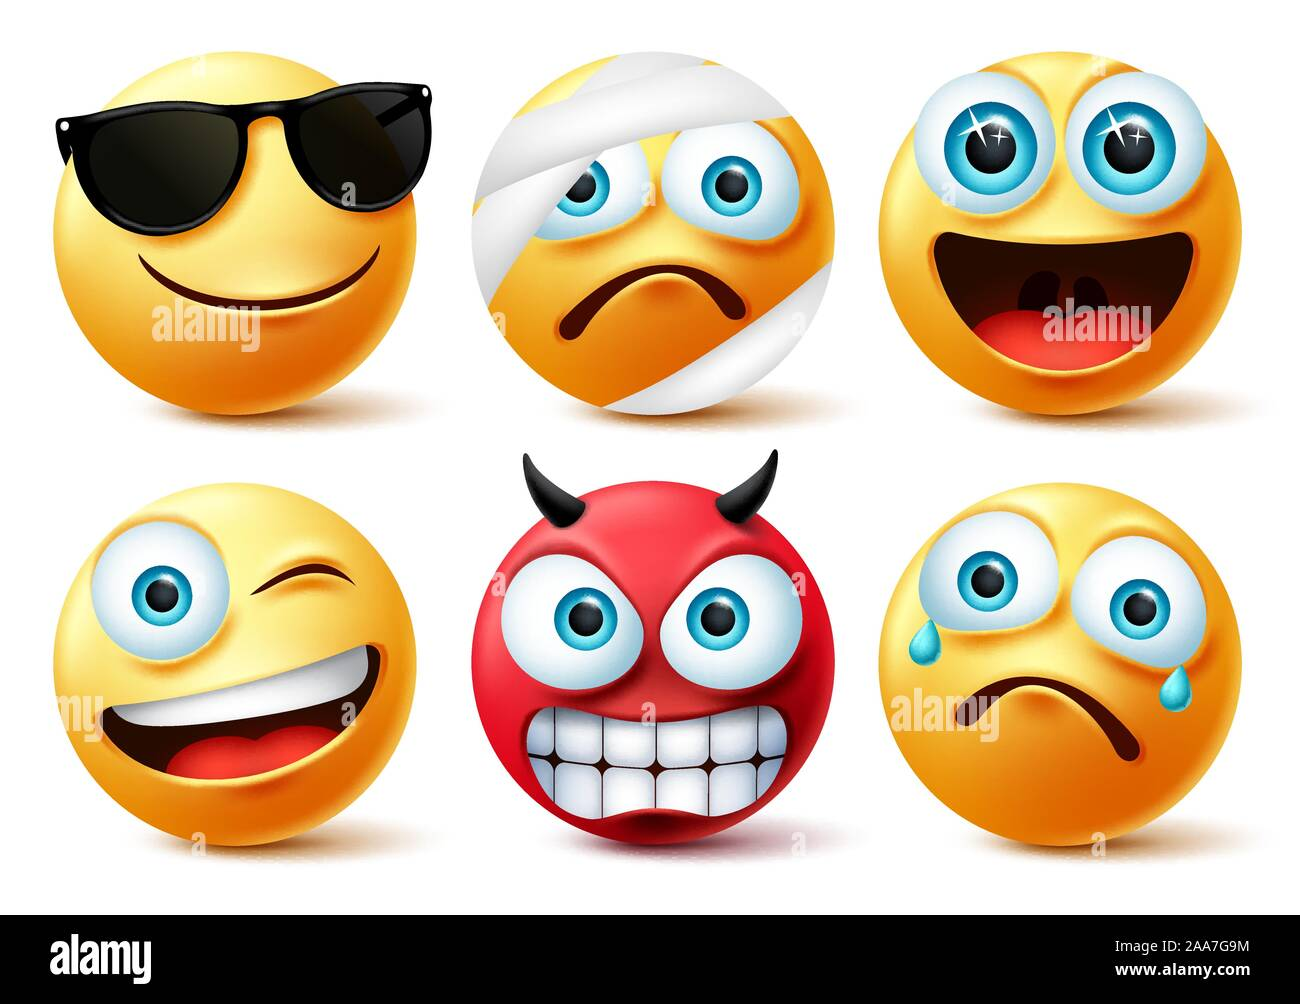 Smiley Emoticon Or Emoji Face Vector Set Smileys Yellow Face Icon And Emoticons In Devil Injured Surprise Angry And Funny Facial Expressions Stock Vector Image Art Alamy